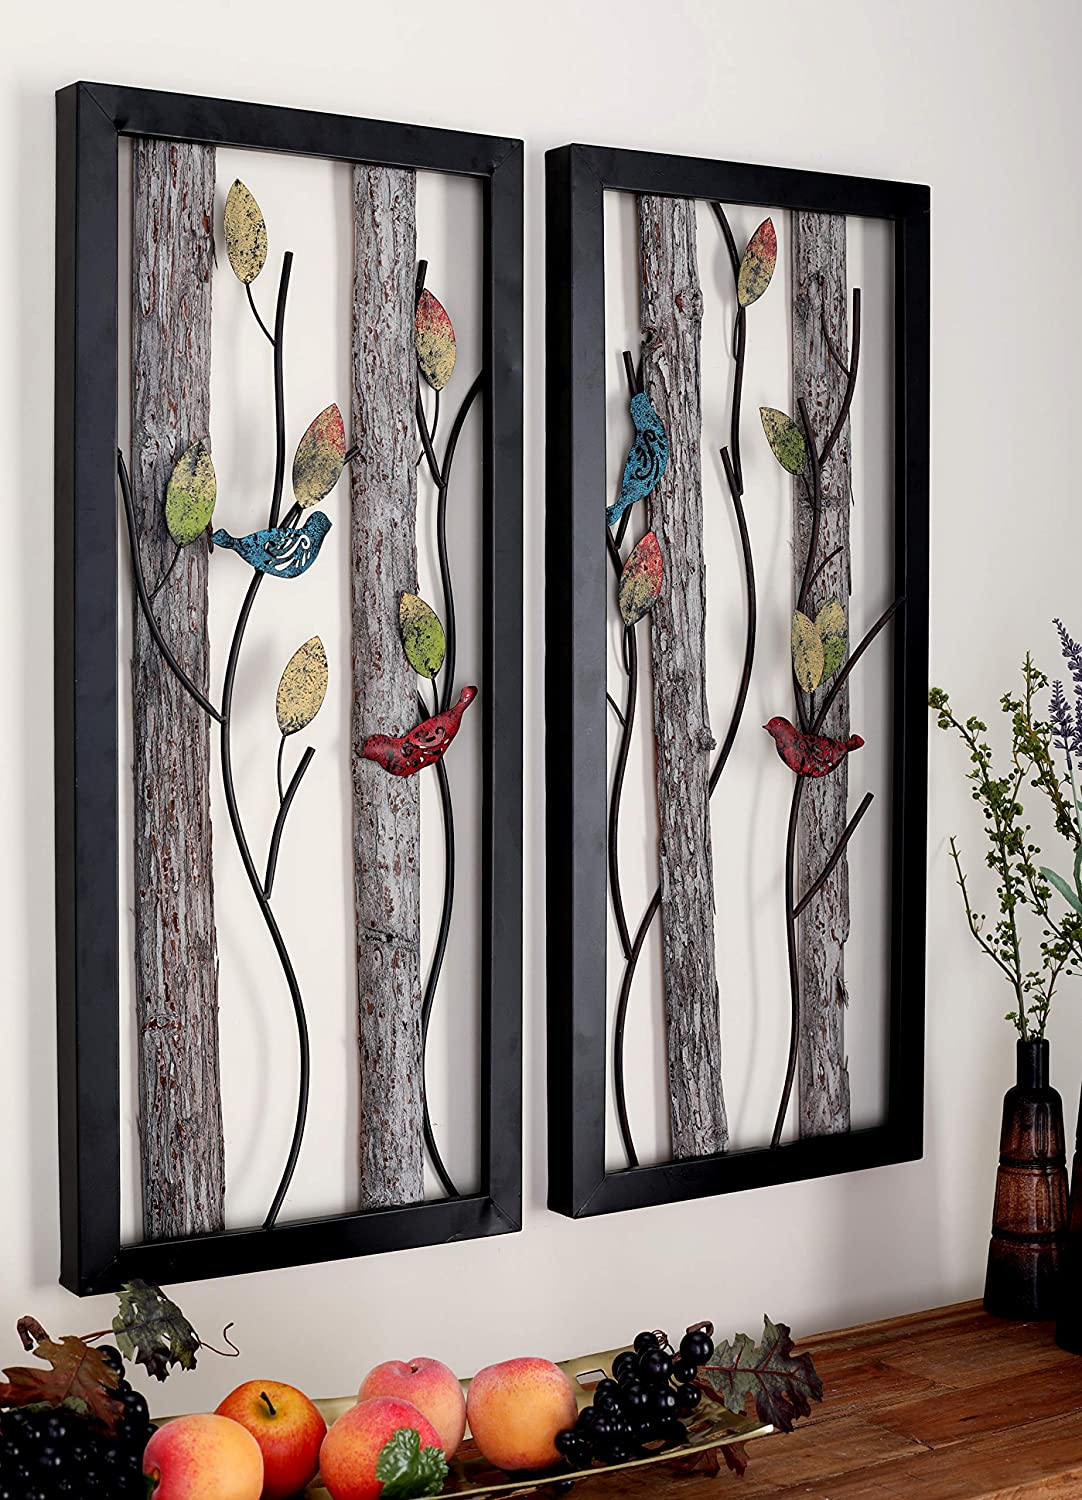 "Deco 79 48635 Large Rectangular Red and Blue Birds on Branches Wood and Metal Wall Décor, Eclectic Wall Art, Bird Décor, Bird Sculptures | Set of 2: 16"" x 36"" Each"